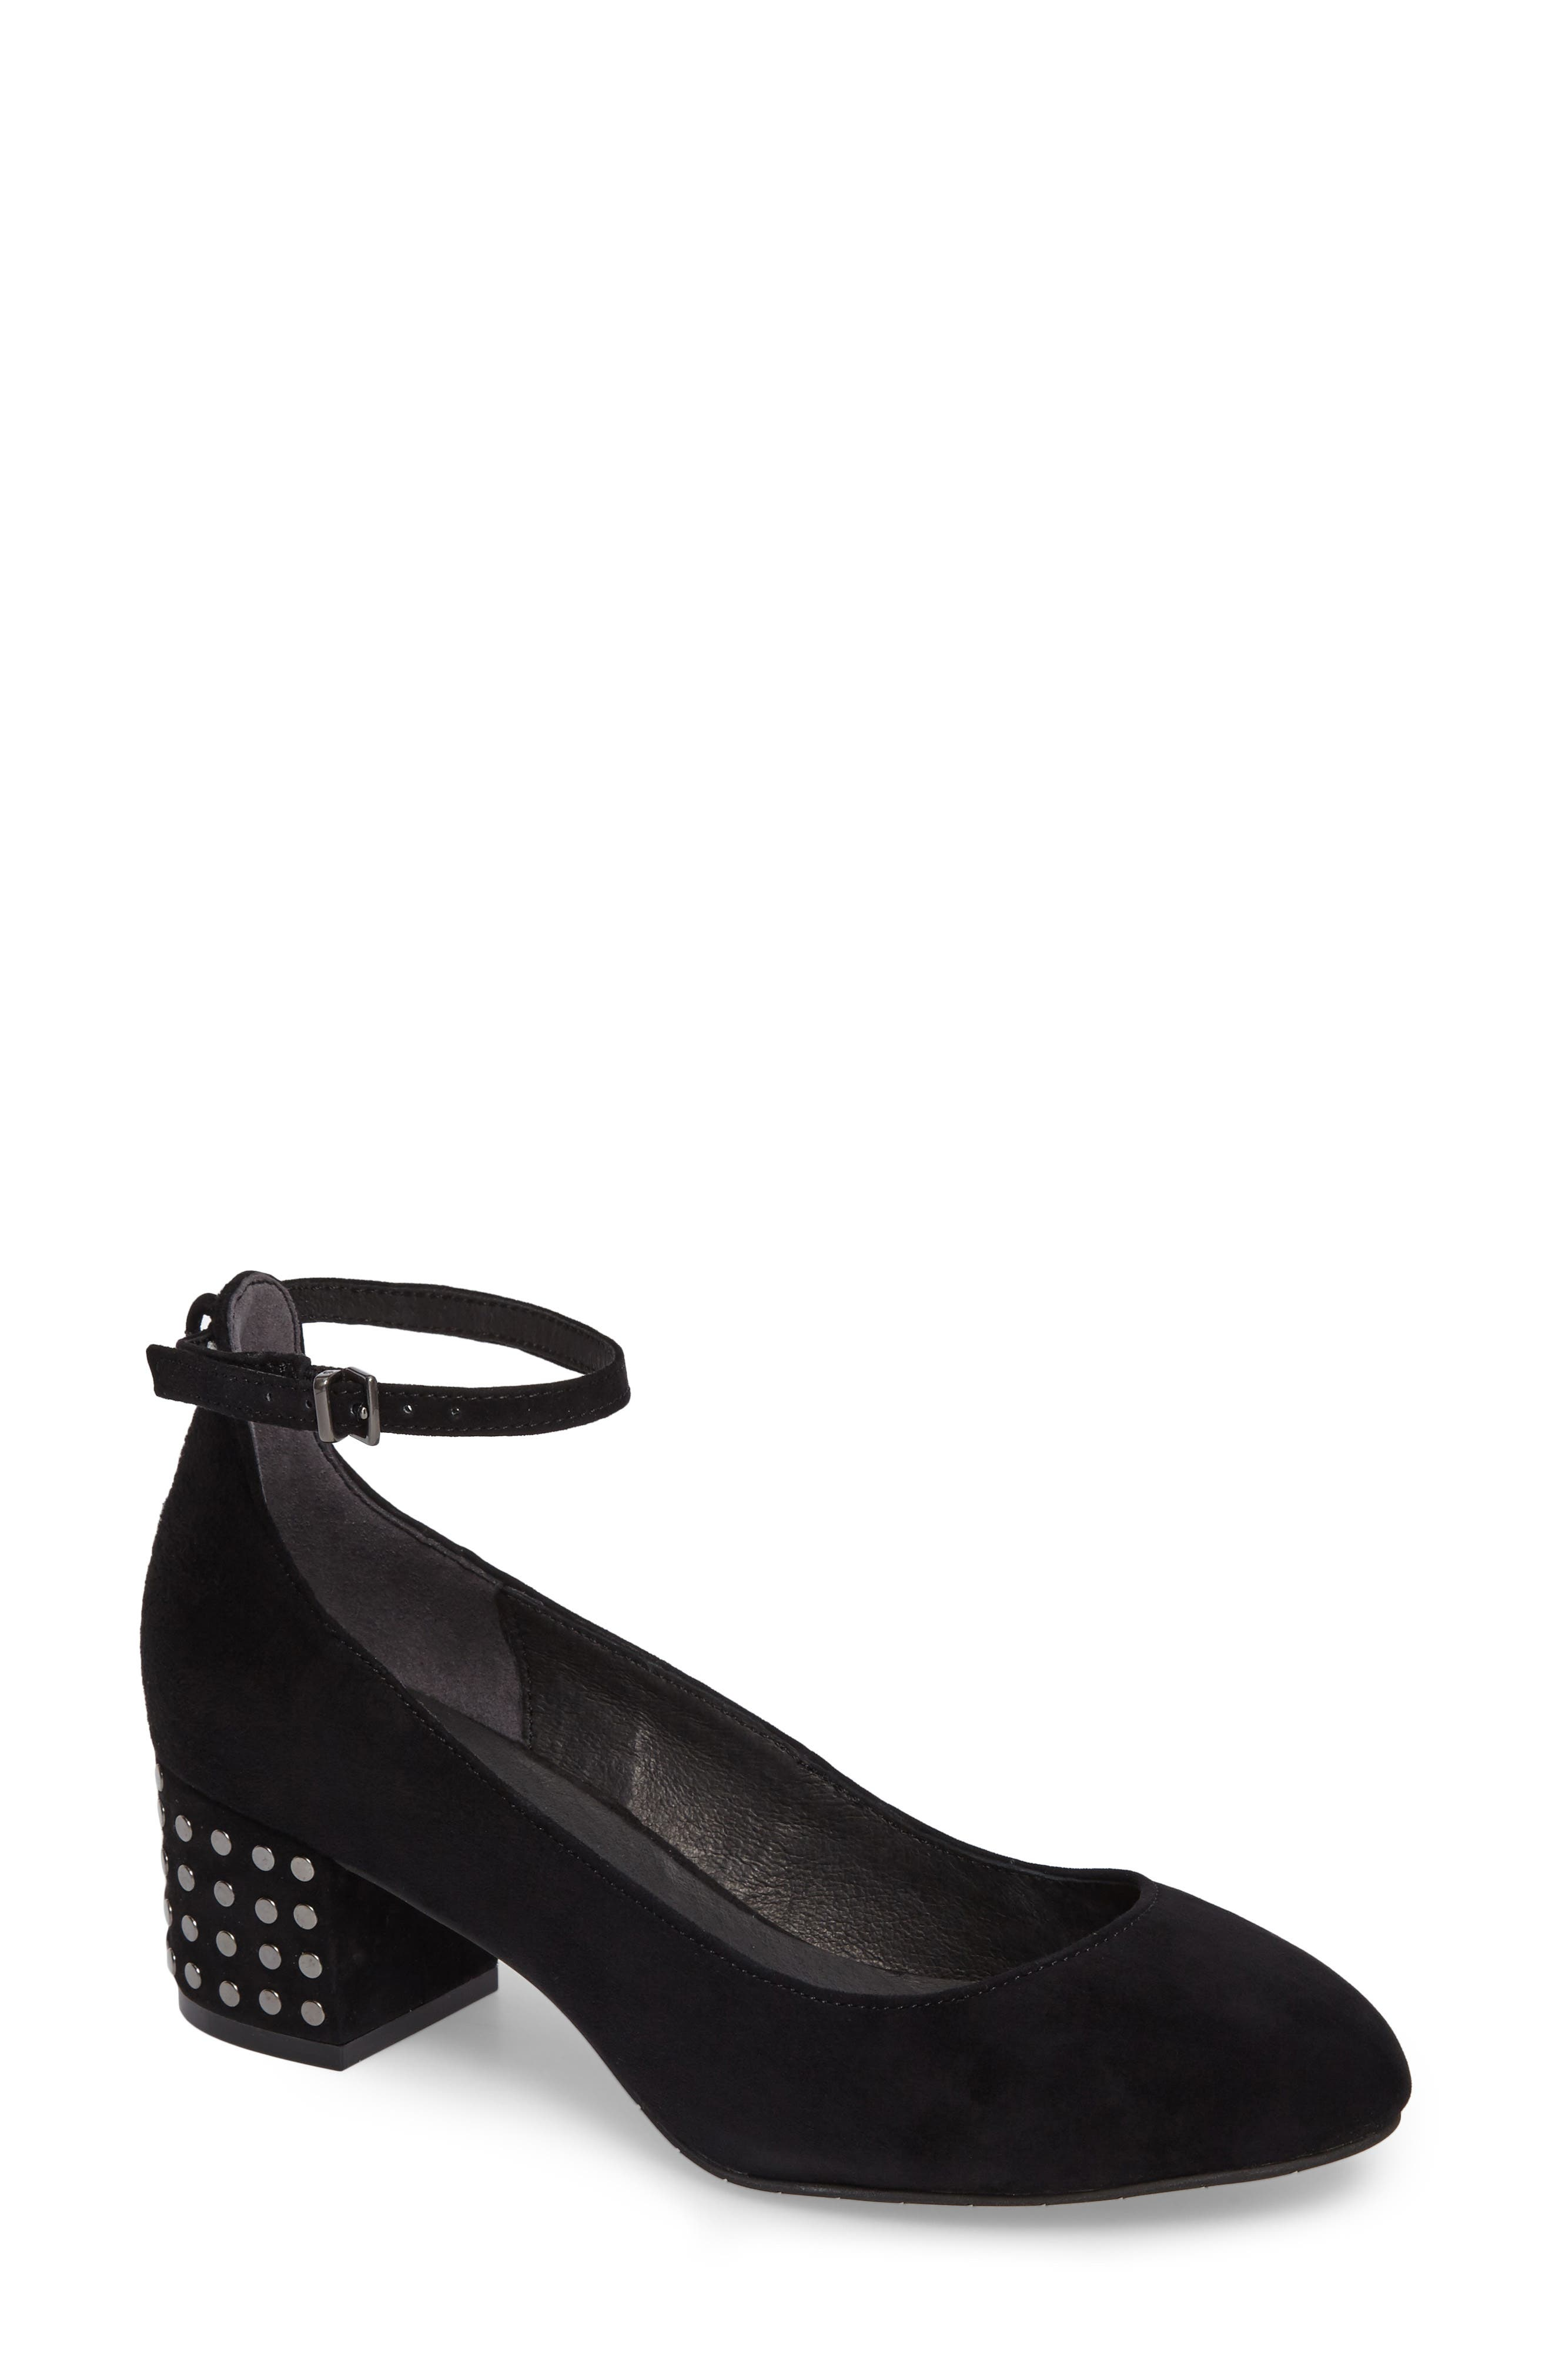 Kenneth Cole New York Thalia Studded Ankle Strap Pump (Women)